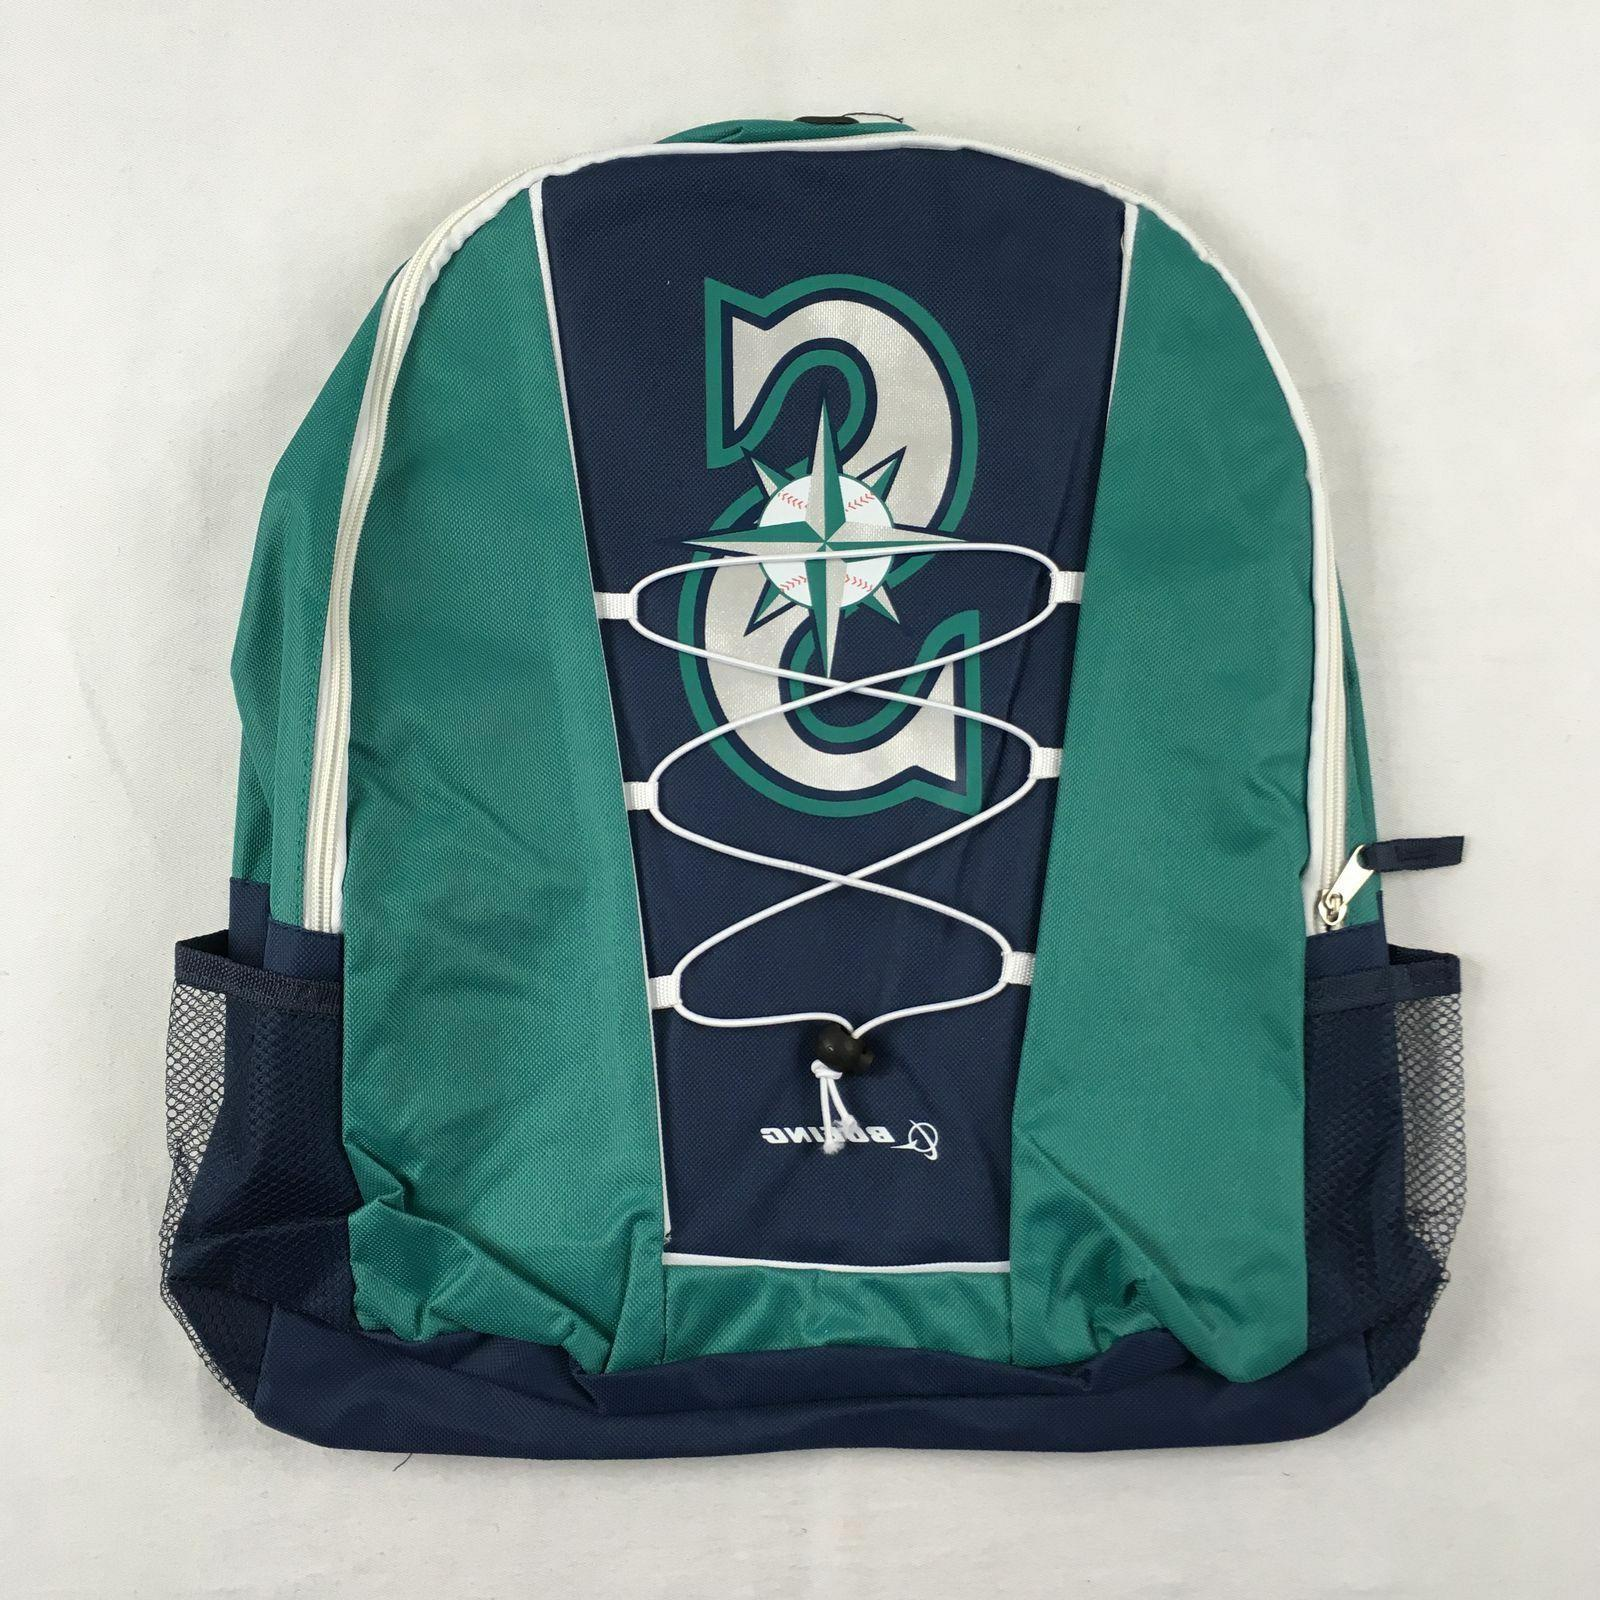 new seattle mariners teal navy backpack